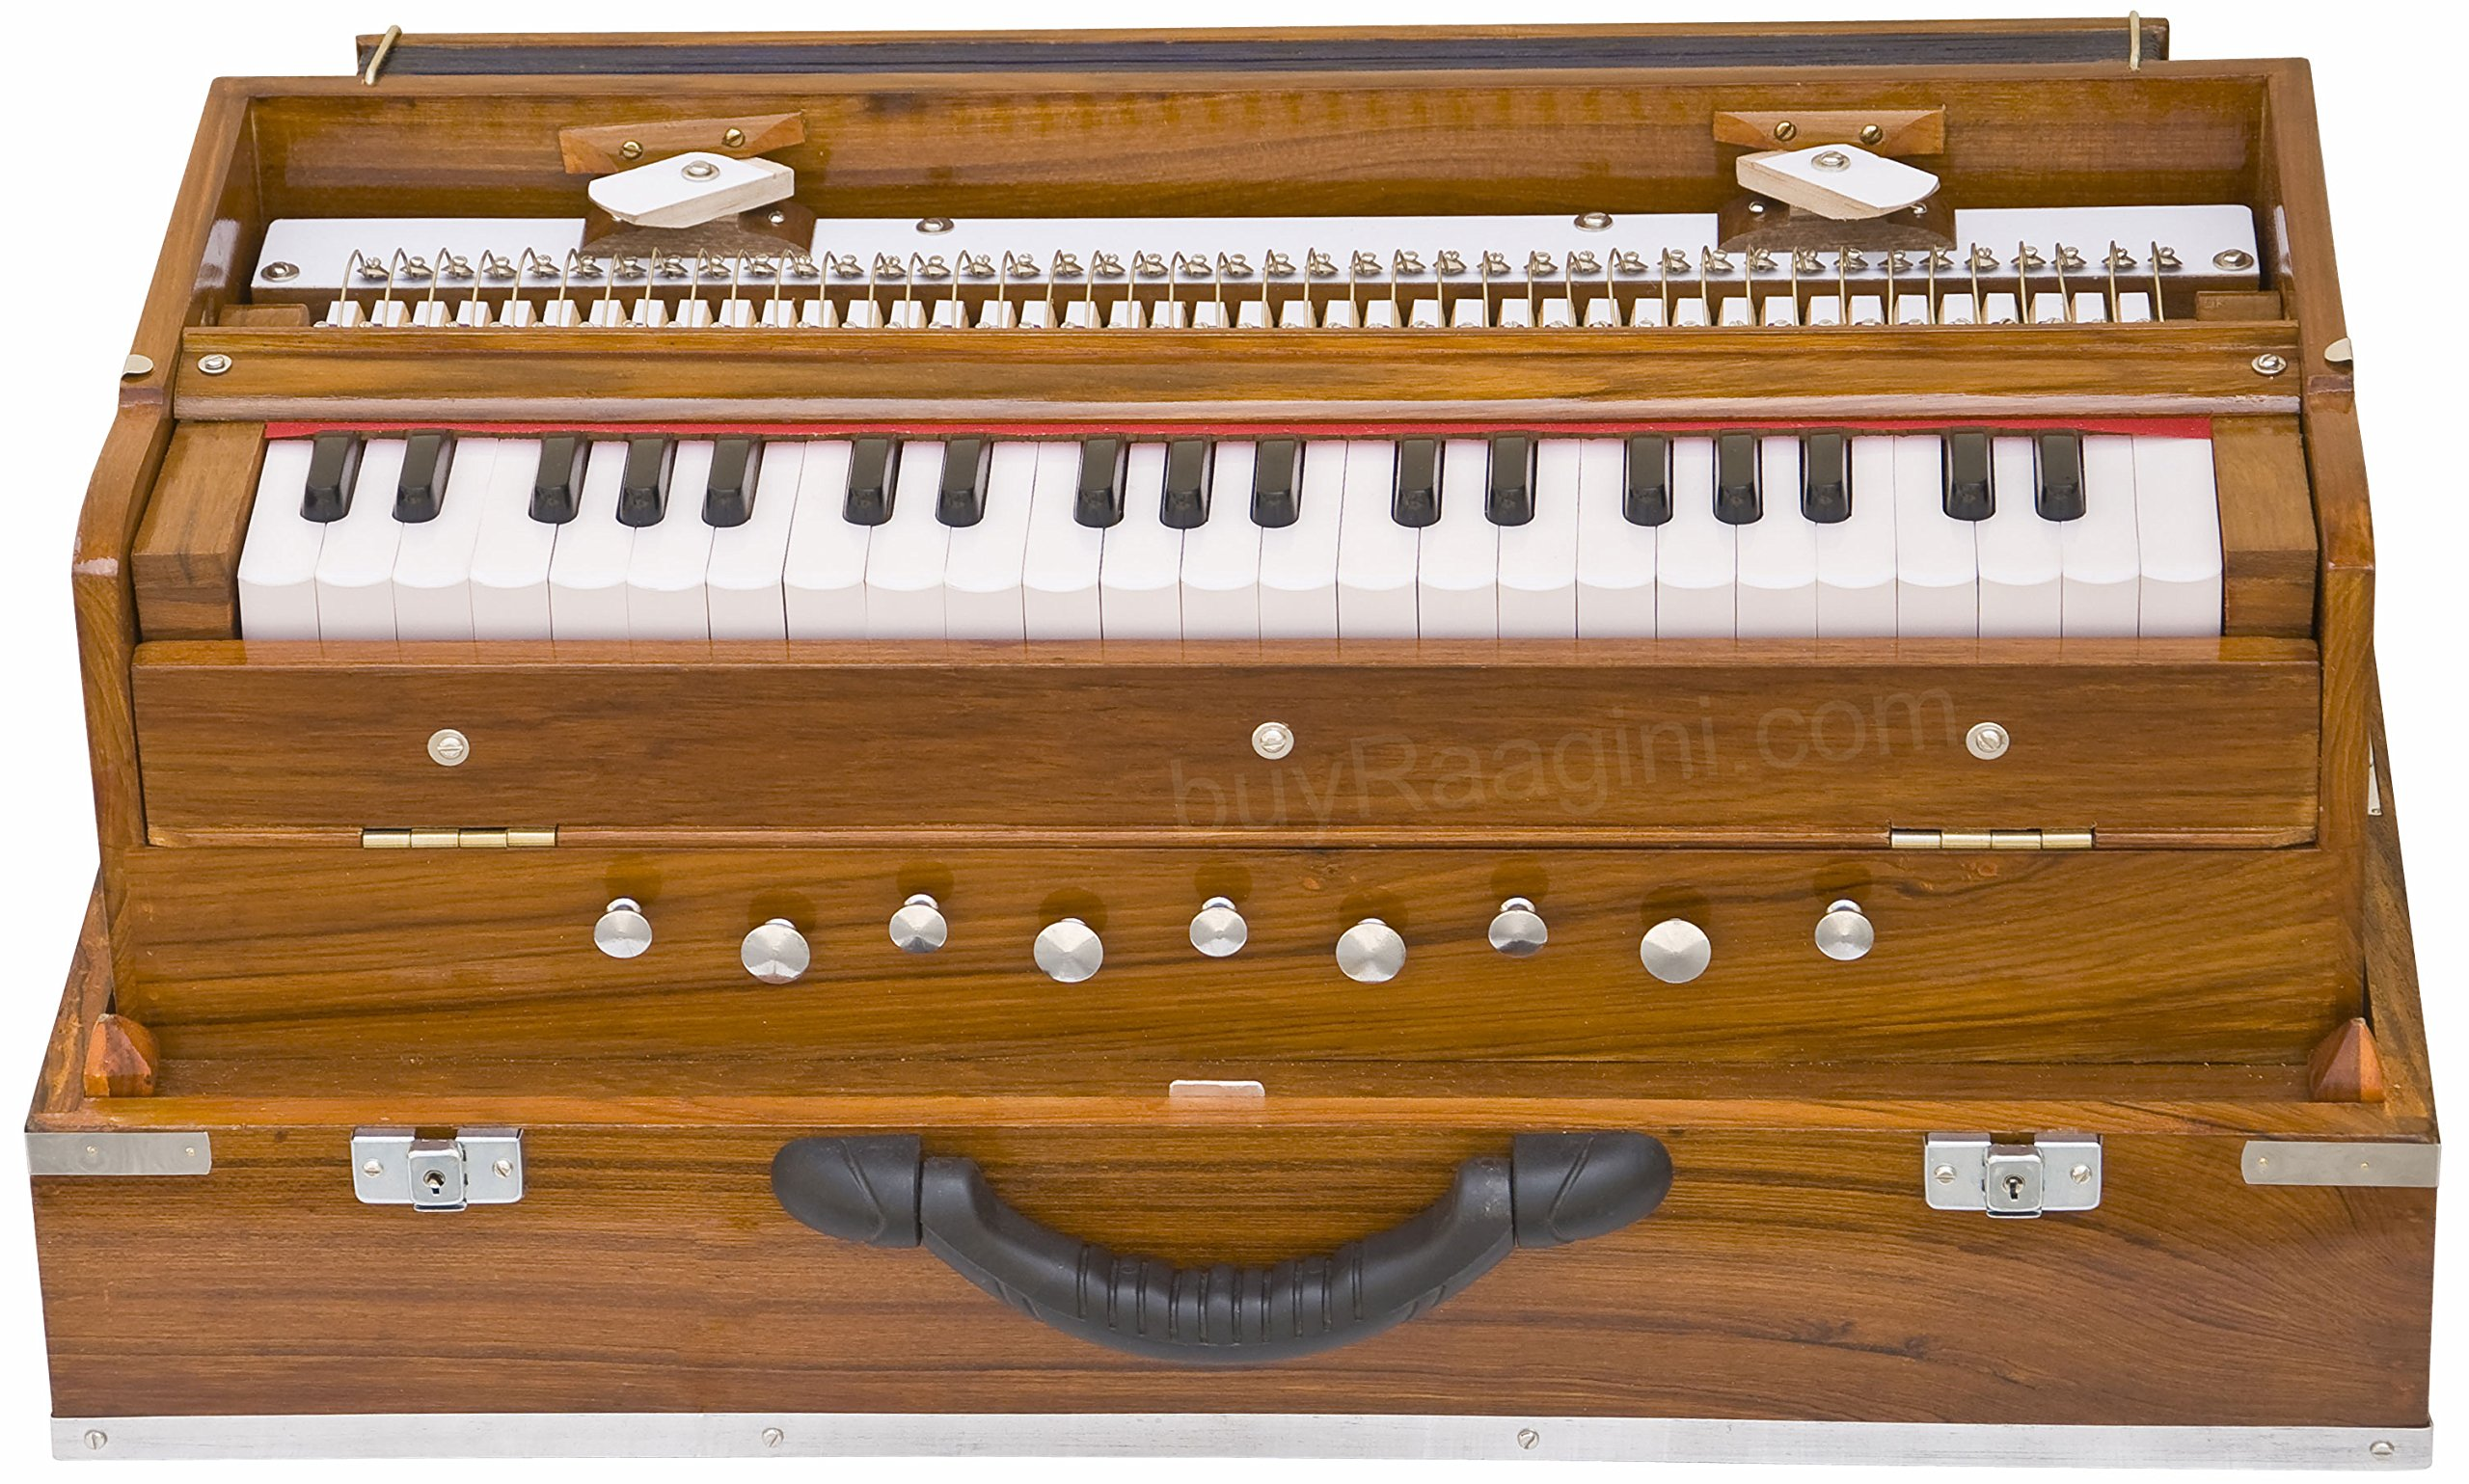 Monoj K Sardar MKS, Harmonium, In USA, Concert Quality, Folding, Special Double Reed, Natural Color, 9 Stop, 3 1/2 Octaves, Padded Bag, Book, Musical Instrument Indian (PDI-AFG)